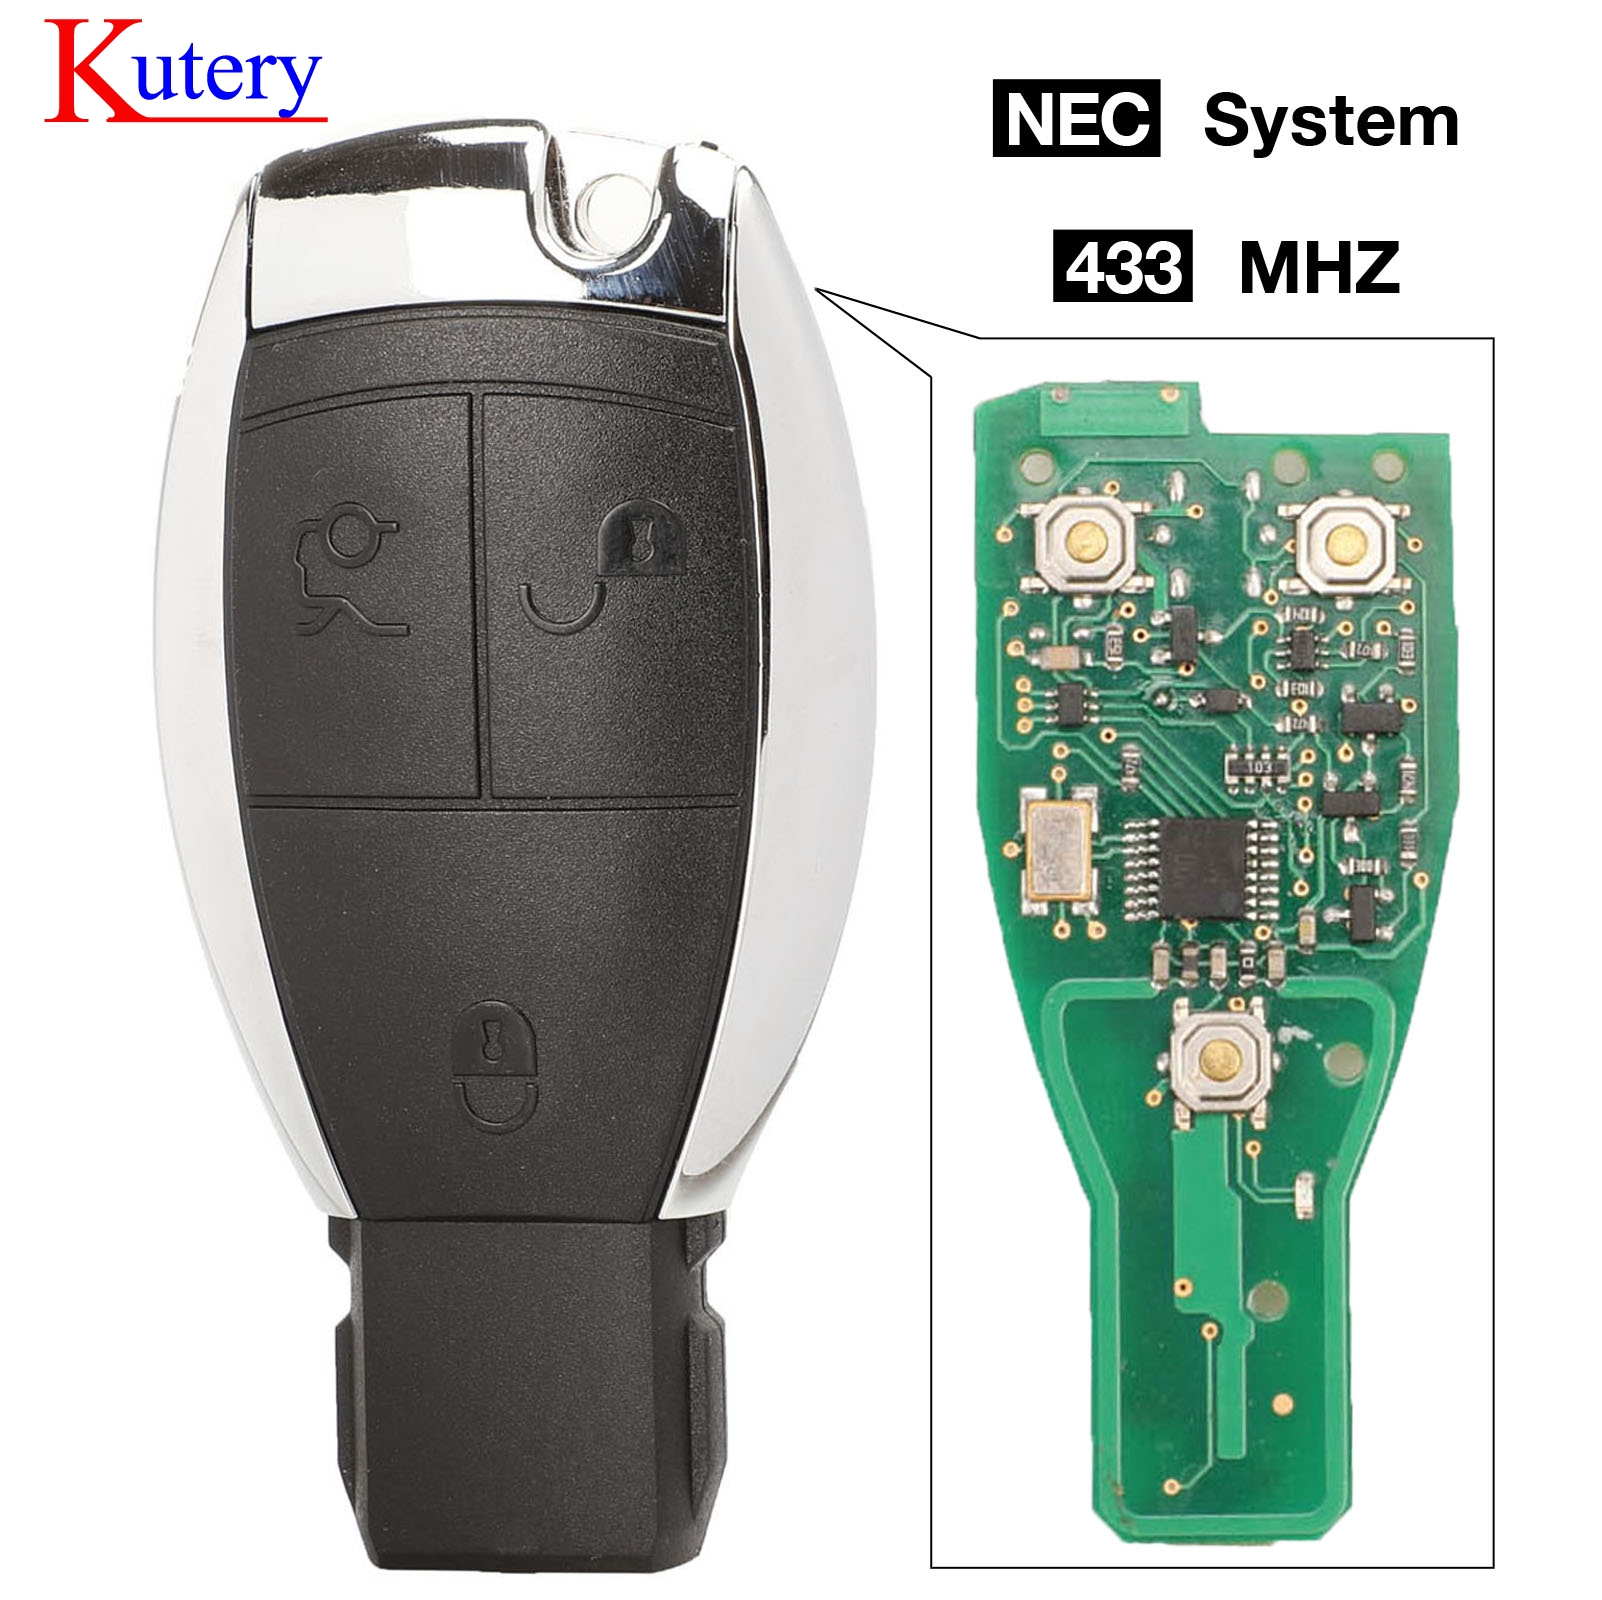 kutery NEC 3 Button <font><b>Remote</b></font> Car <font><b>Key</b></font> Fob 433Mhz For Mercedes For Benz CLS W204 W202 W212 <font><b>W211</b></font> W203 W205 image